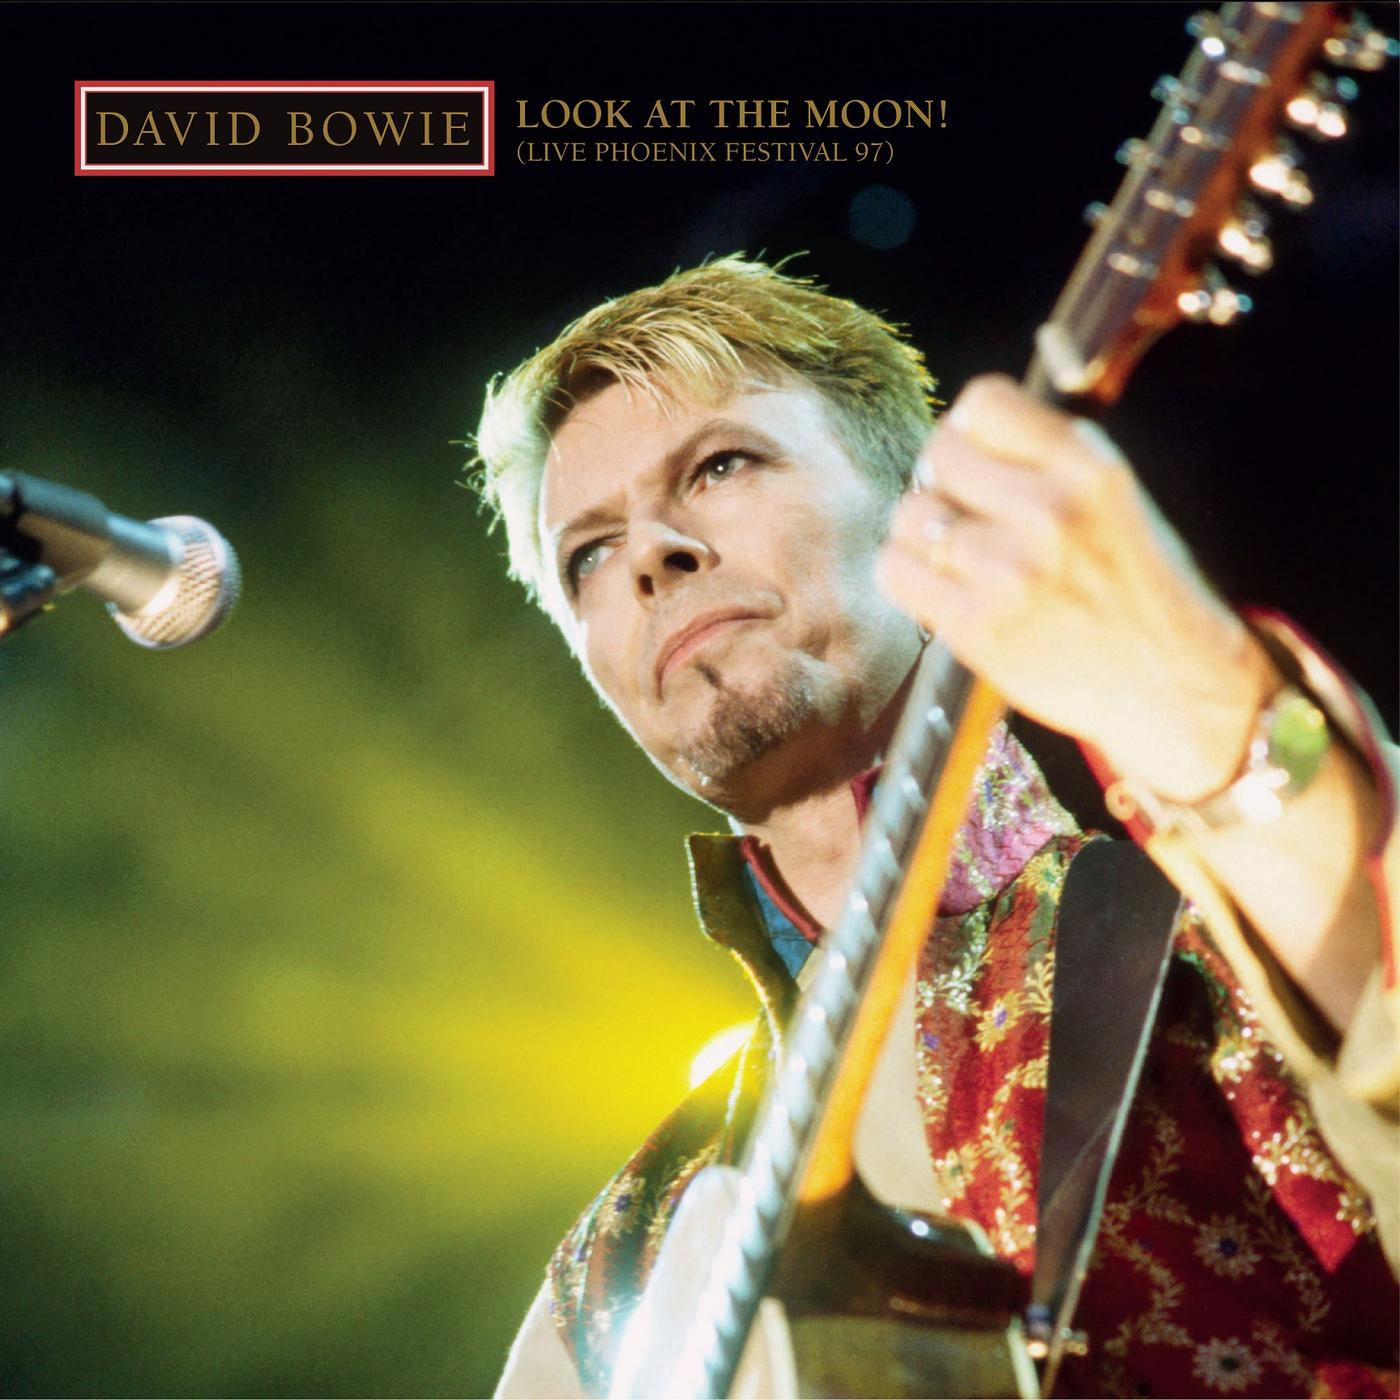 David Bowie - Look At The Moon! album cover